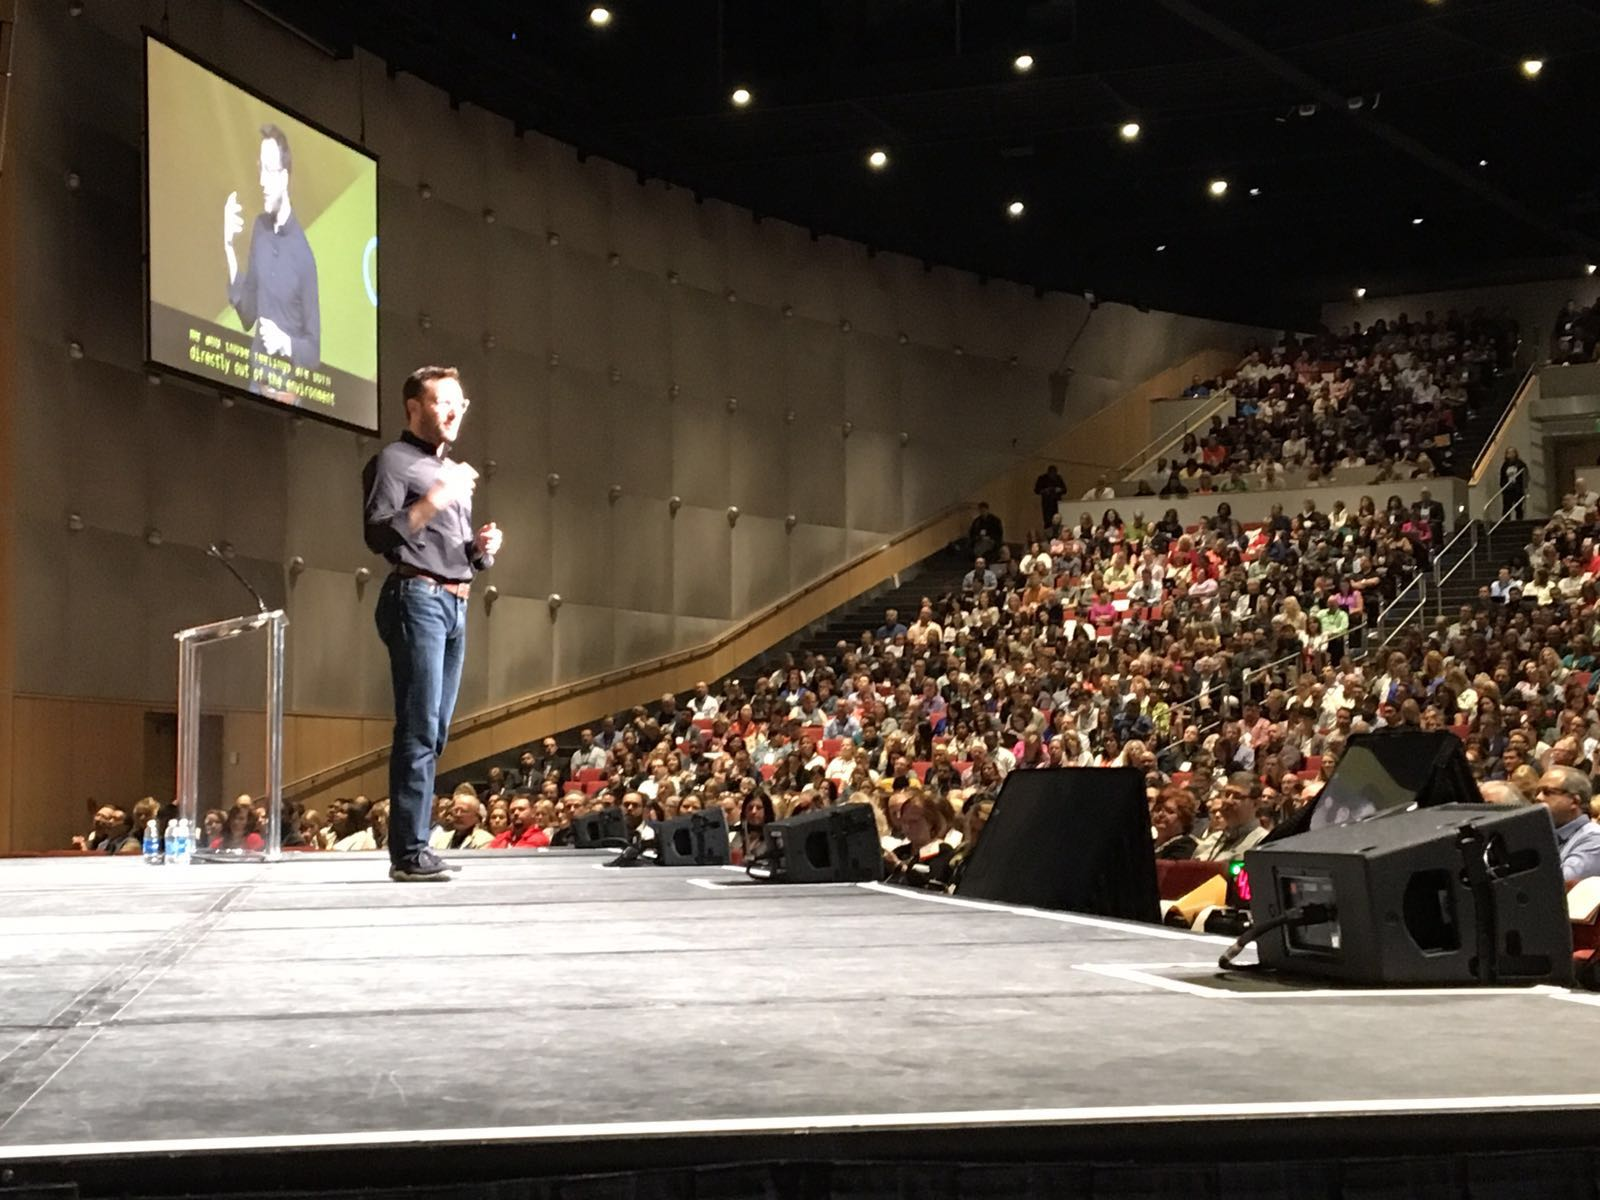 Leadership is about taking care of the people. The people will take care of the results. @simonsinek #ATD2016 https://t.co/cRkWEx1P31